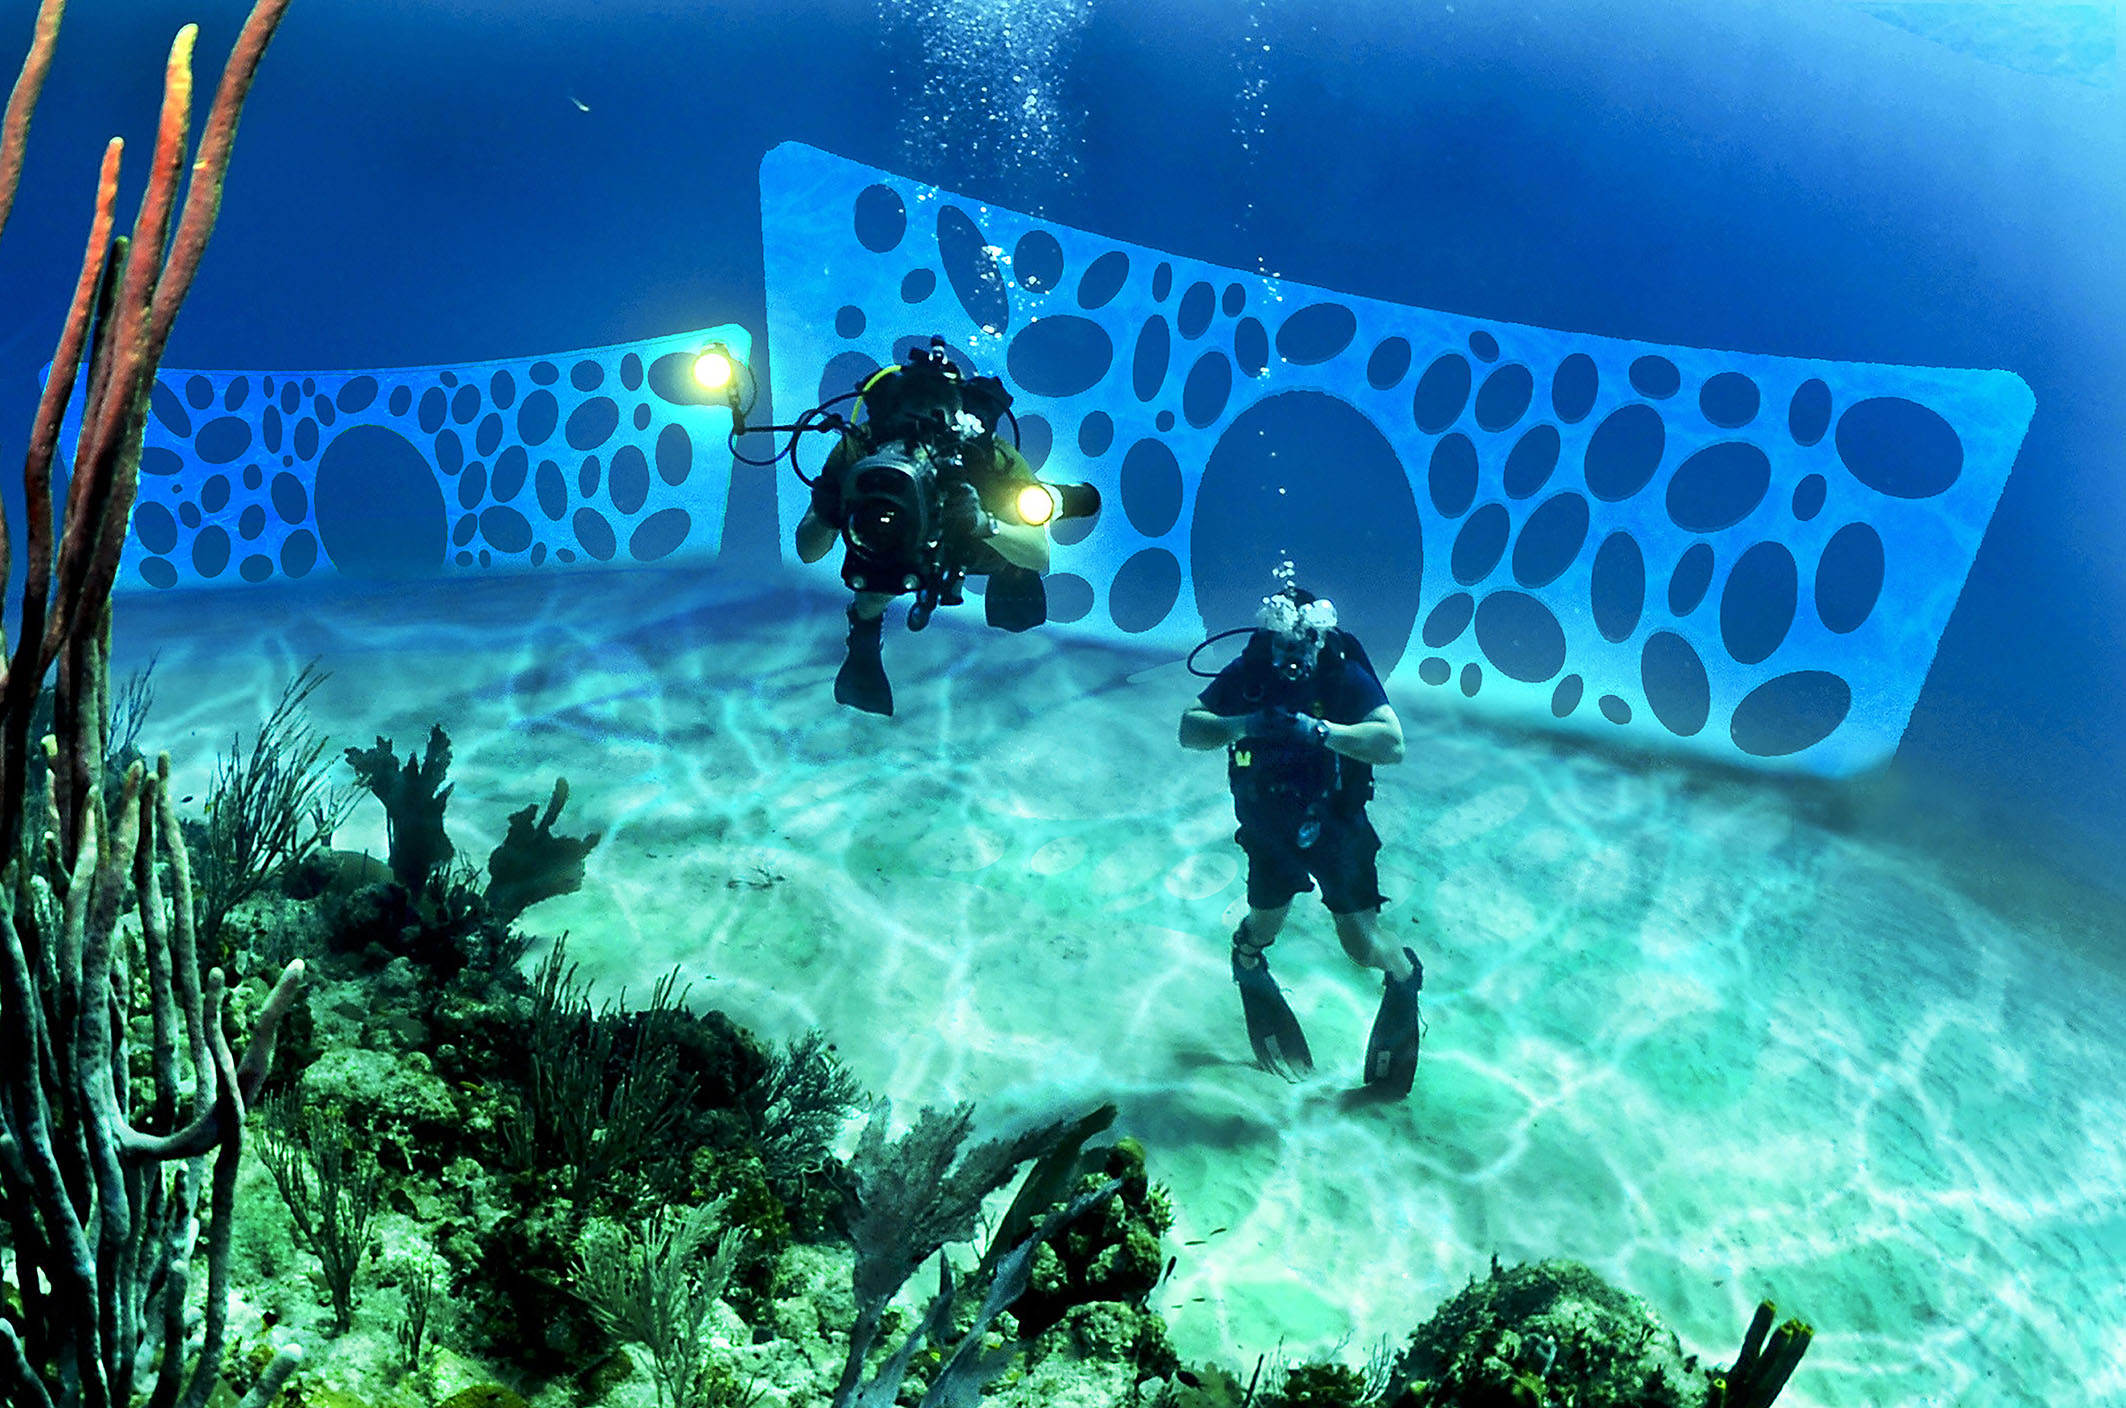 Setting 3 - the underwater park Architetto Tommaso Di Pierro